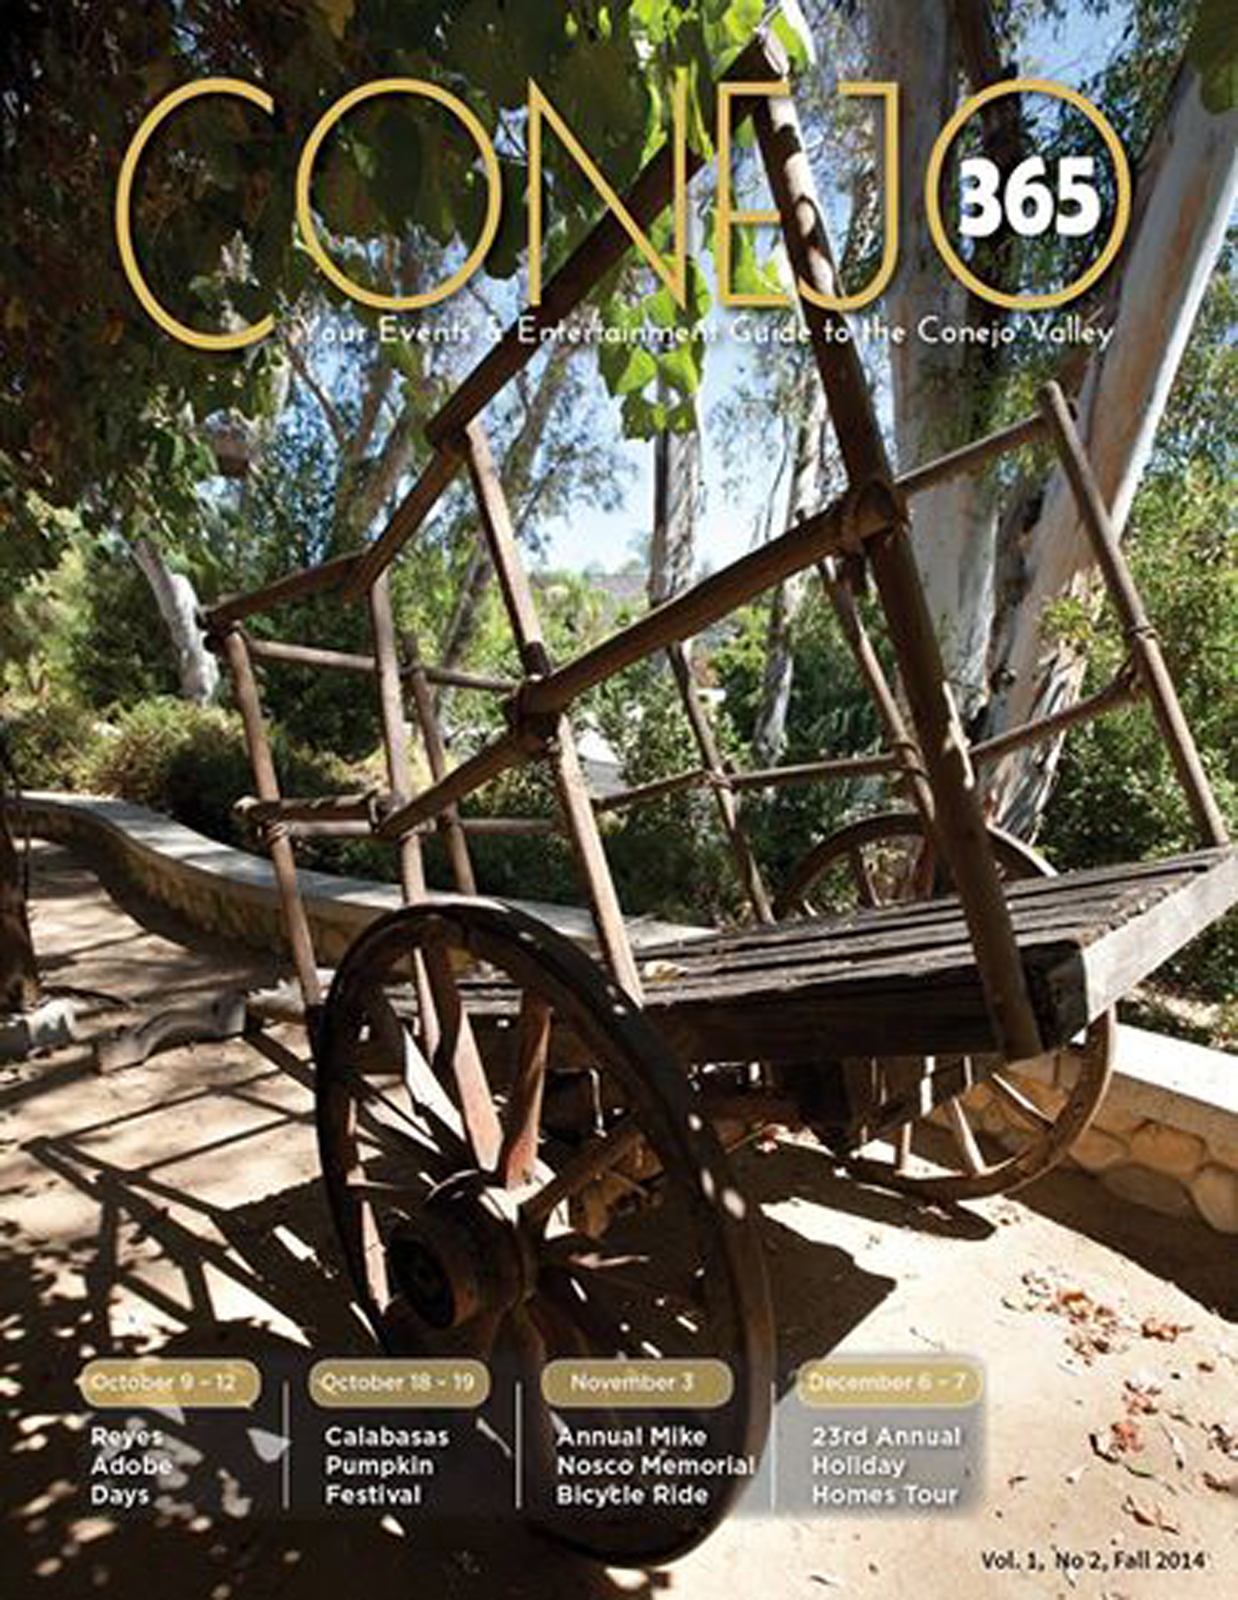 Conejo365 Magazine Cover fall 2014 cart from Planet of the Apes movie at Reyes Adobe